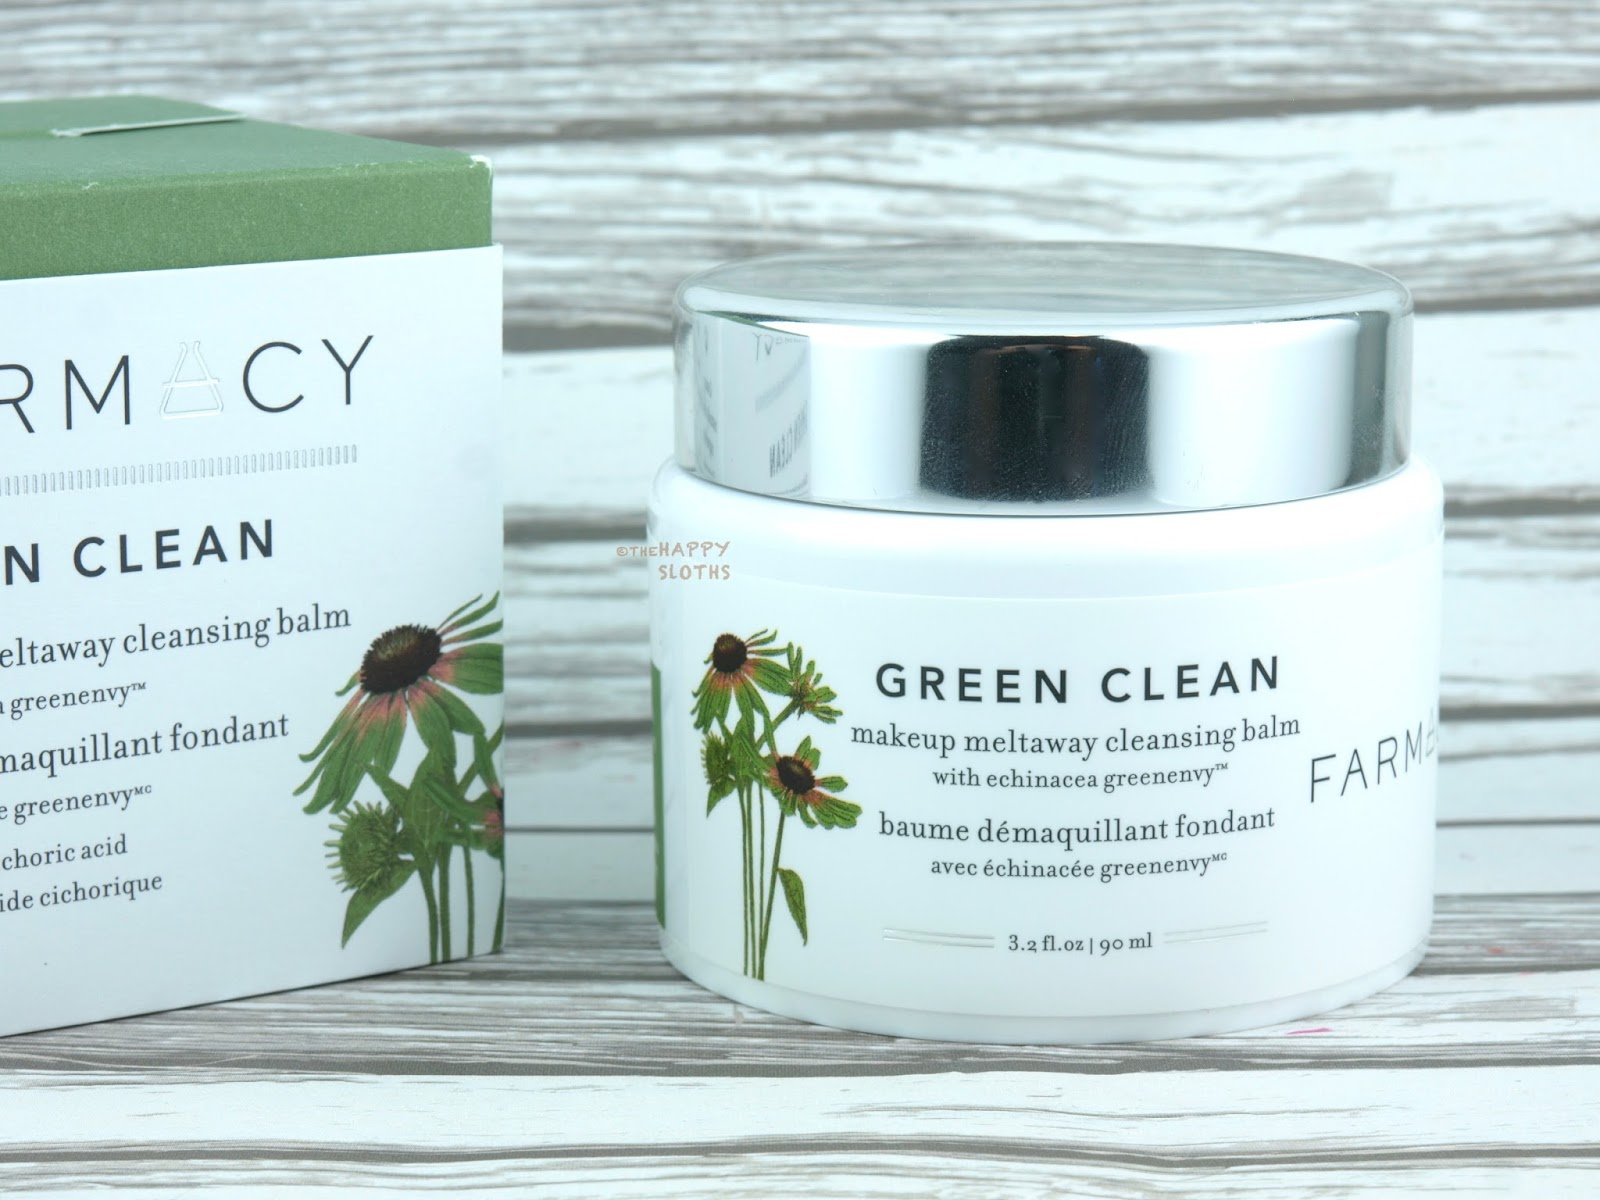 Green Clean Makeup Meltaway Cleansing Balm with Echinacea by farmacy #16